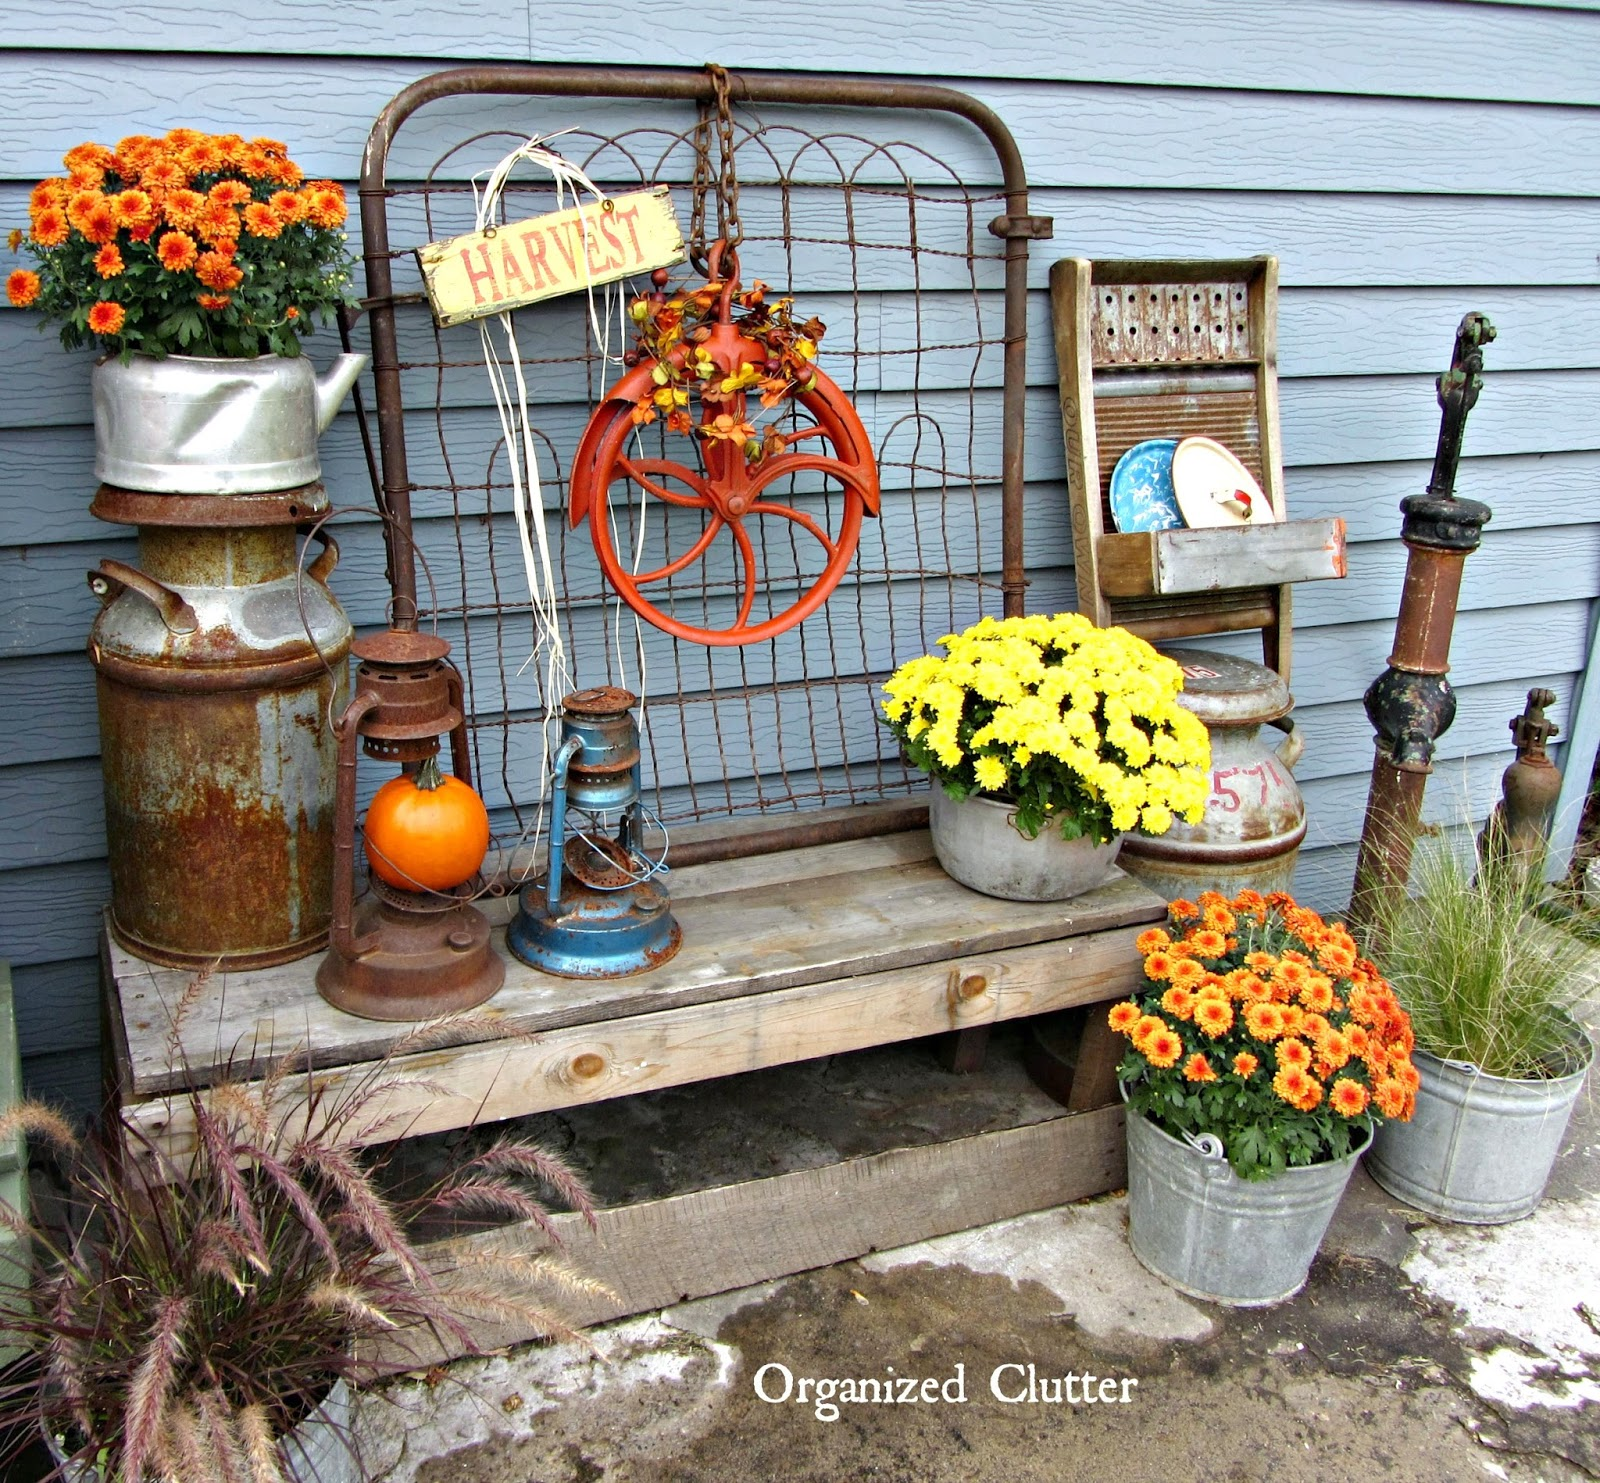 Fall outdoor decor a salvage style event organized clutter for Outdoor decorative items